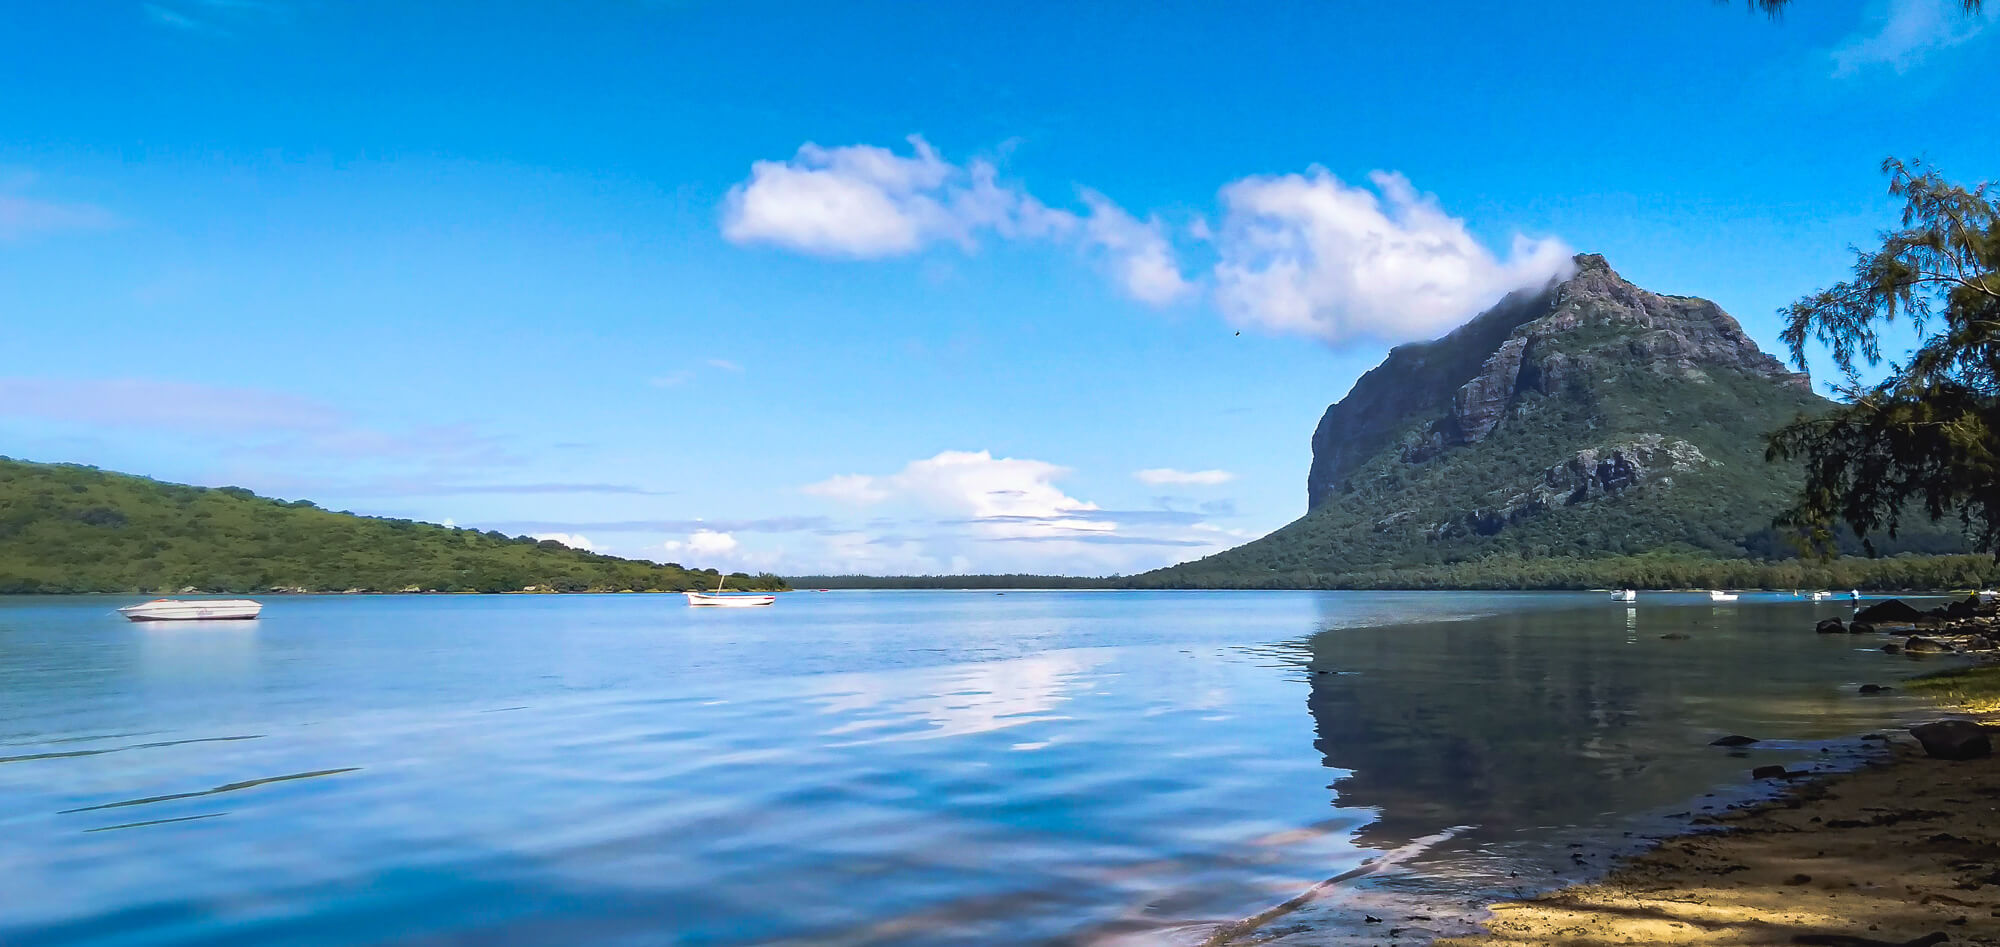 The best area to stay in Mauritius - Le Morne